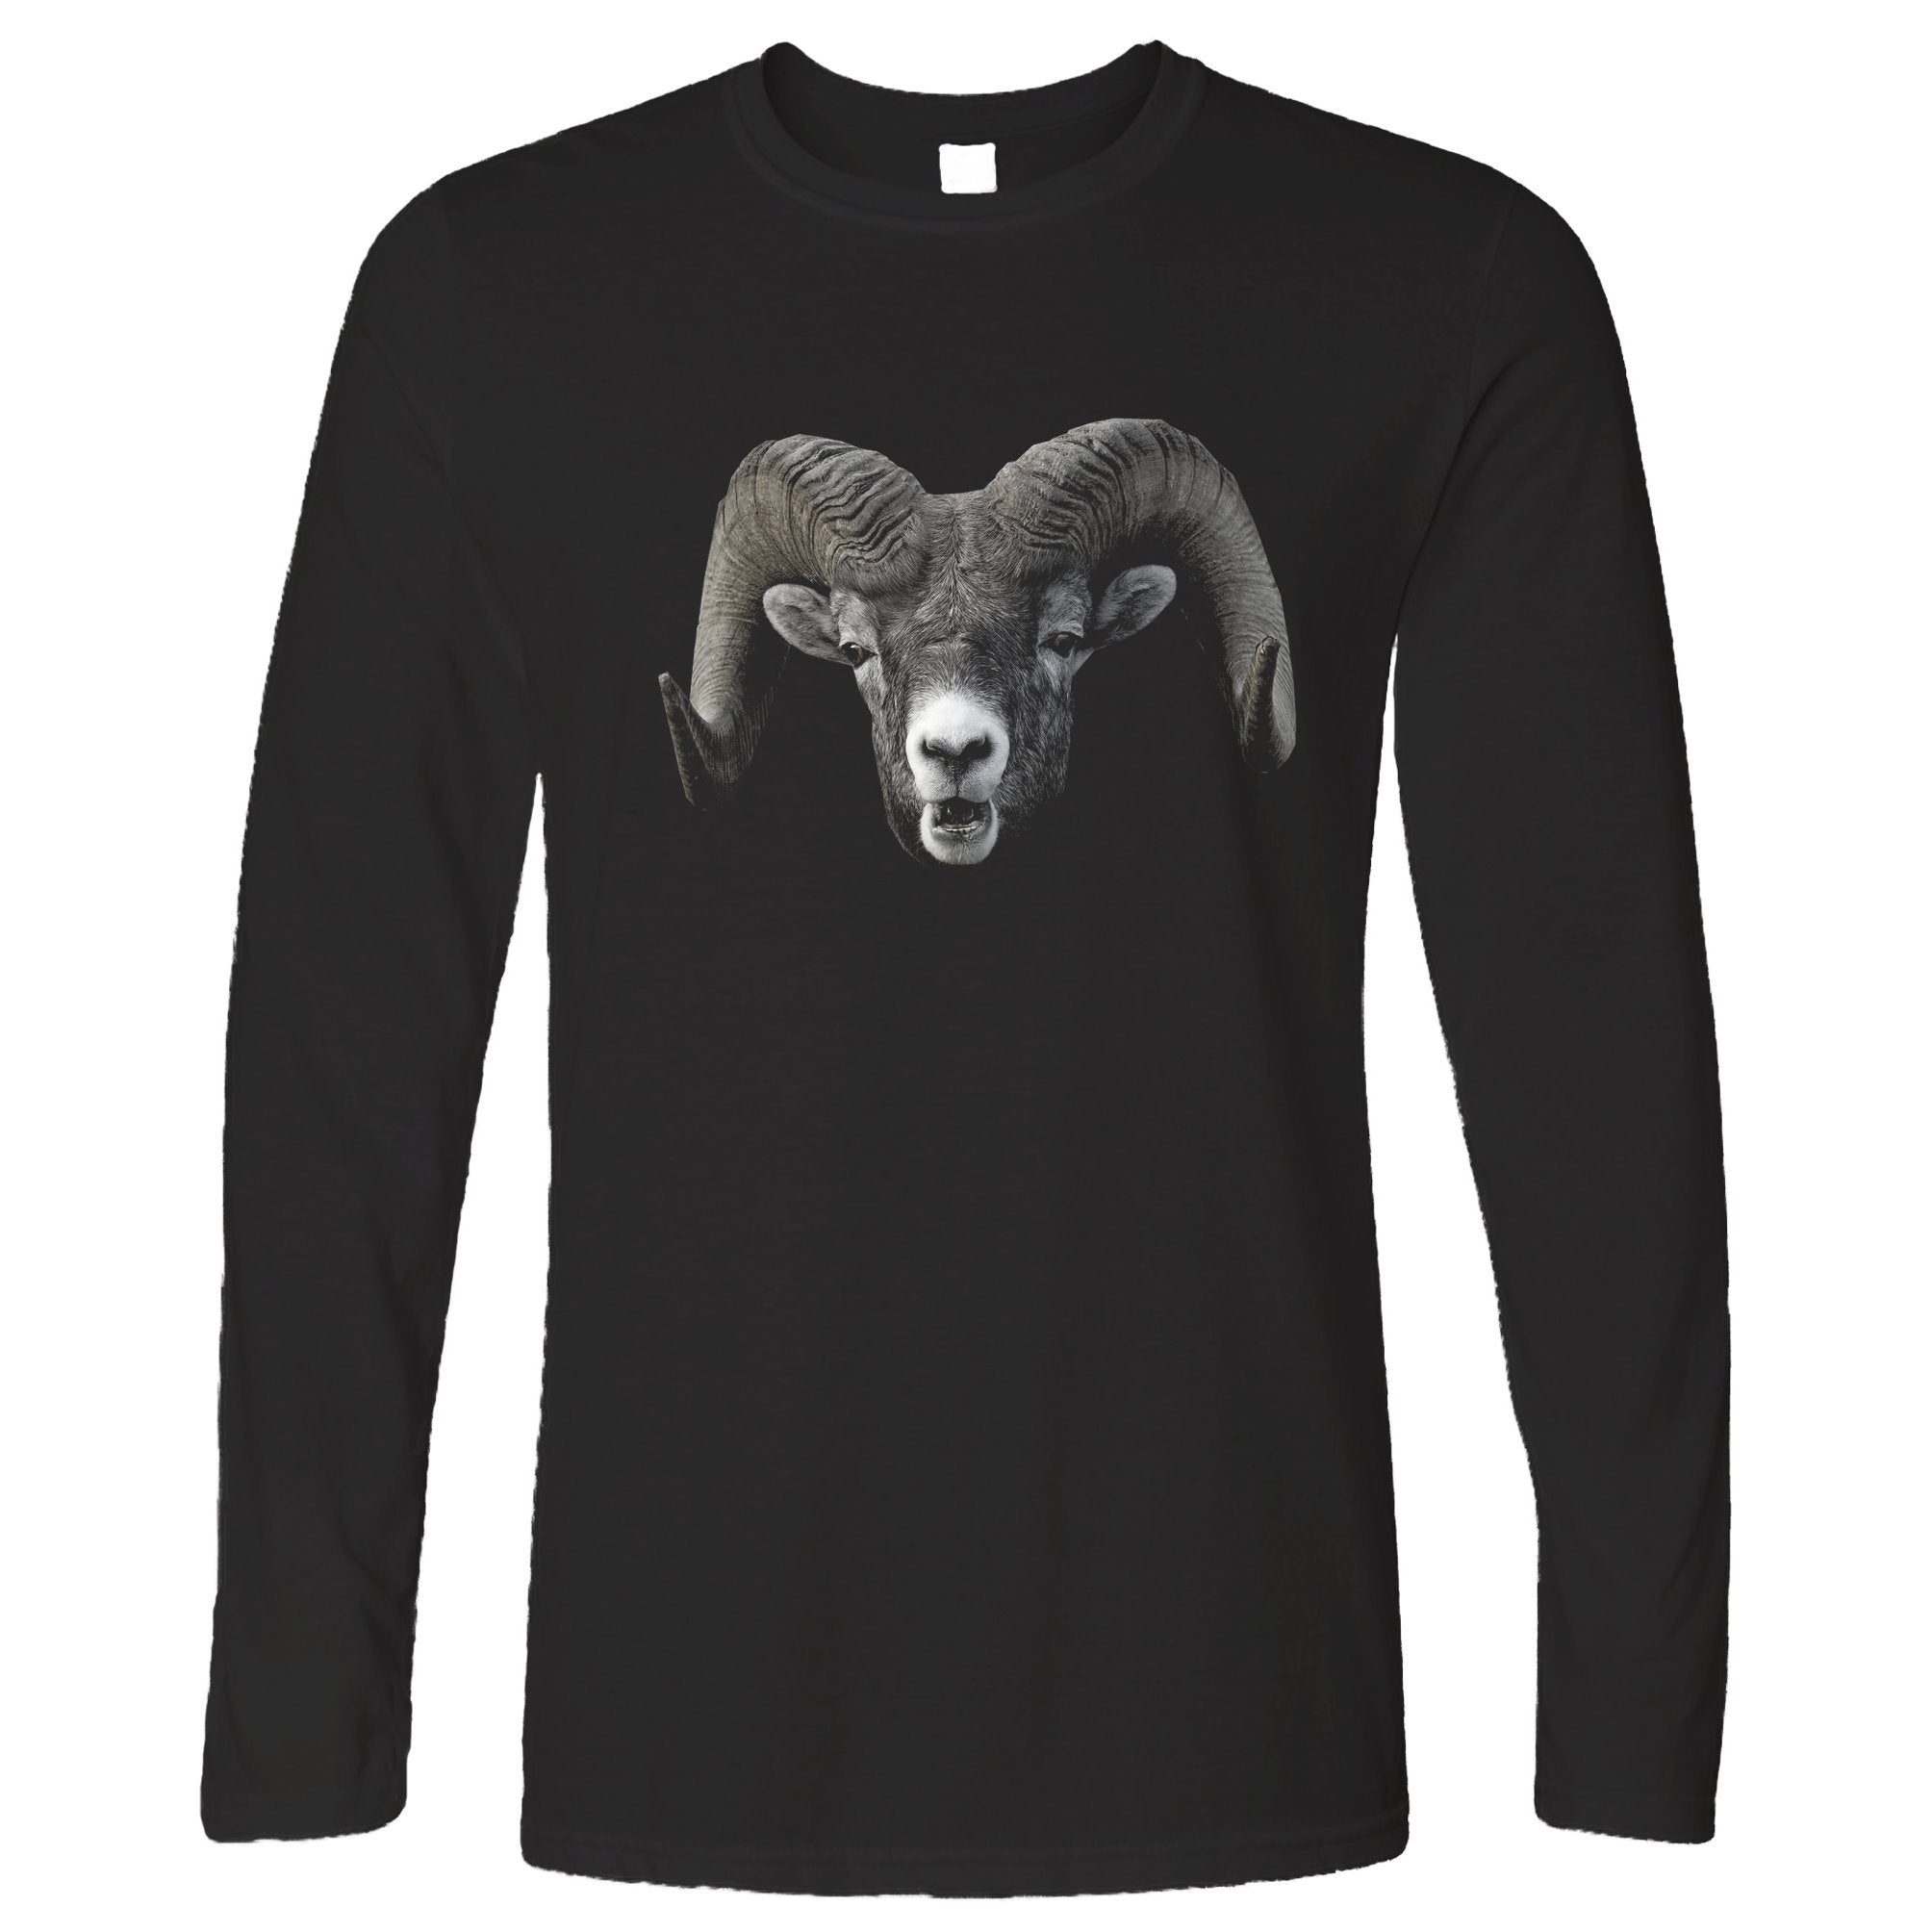 Ram Face Long Sleeve Cool Horned Goat Head T-Shirt